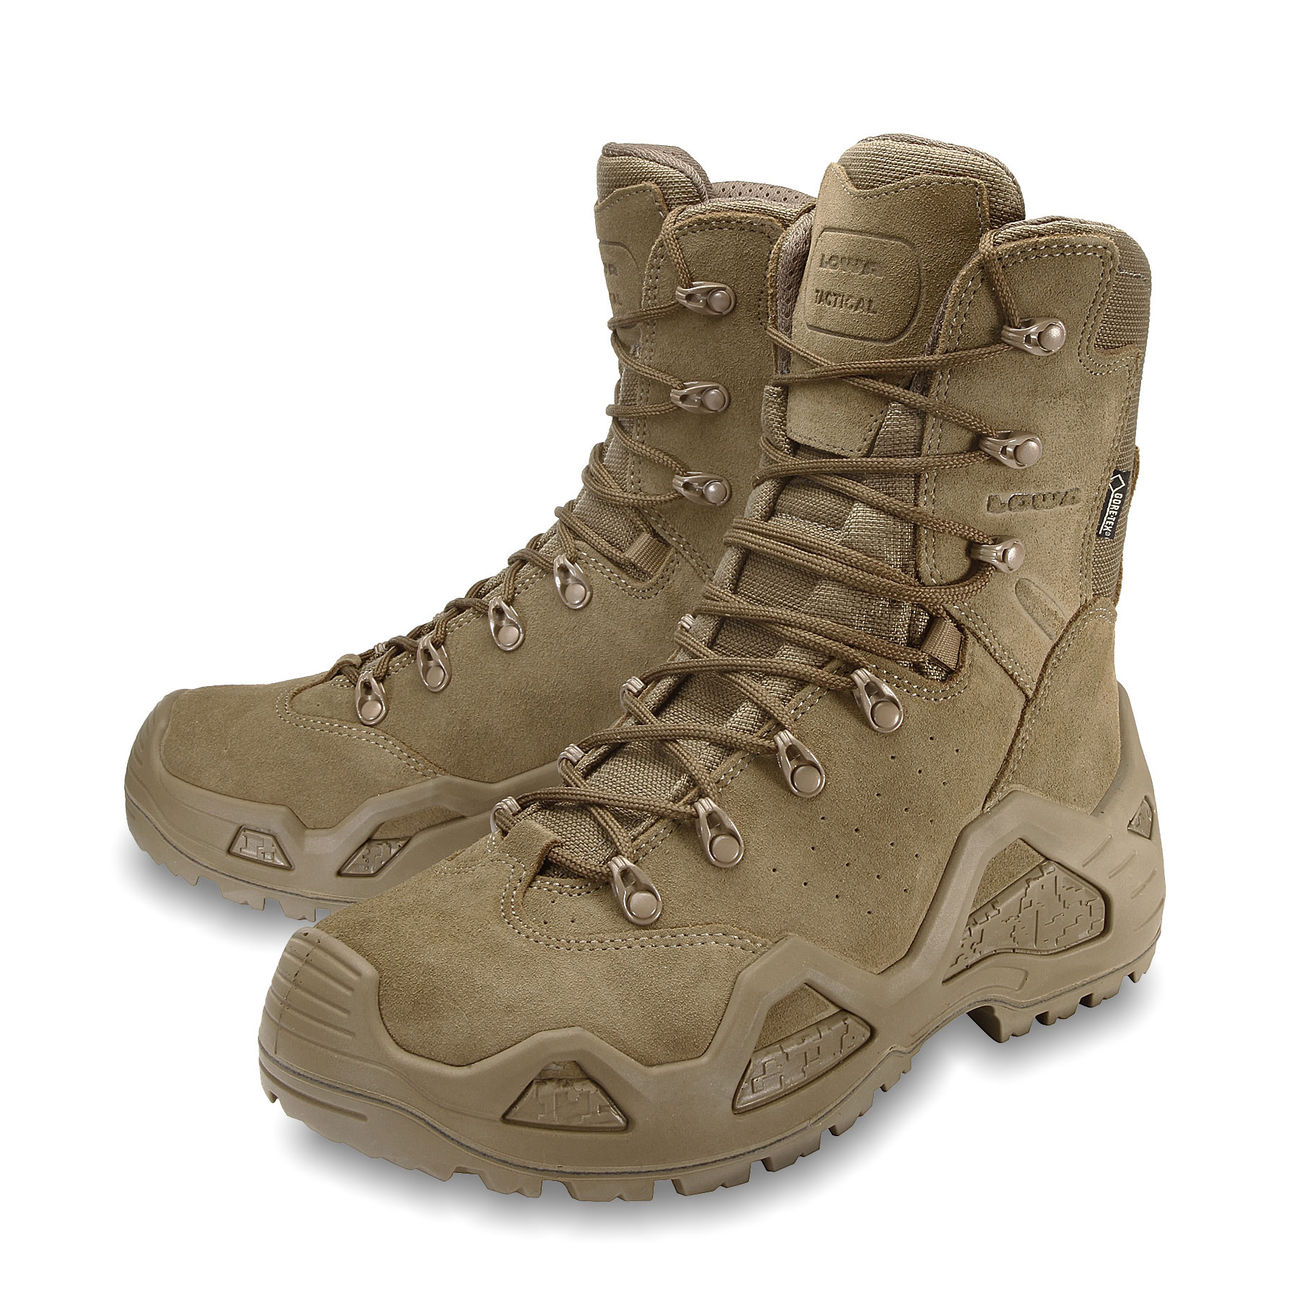 official supplier classic styles how to buy Lowa Stiefel Z-8S GTX Coyote OP